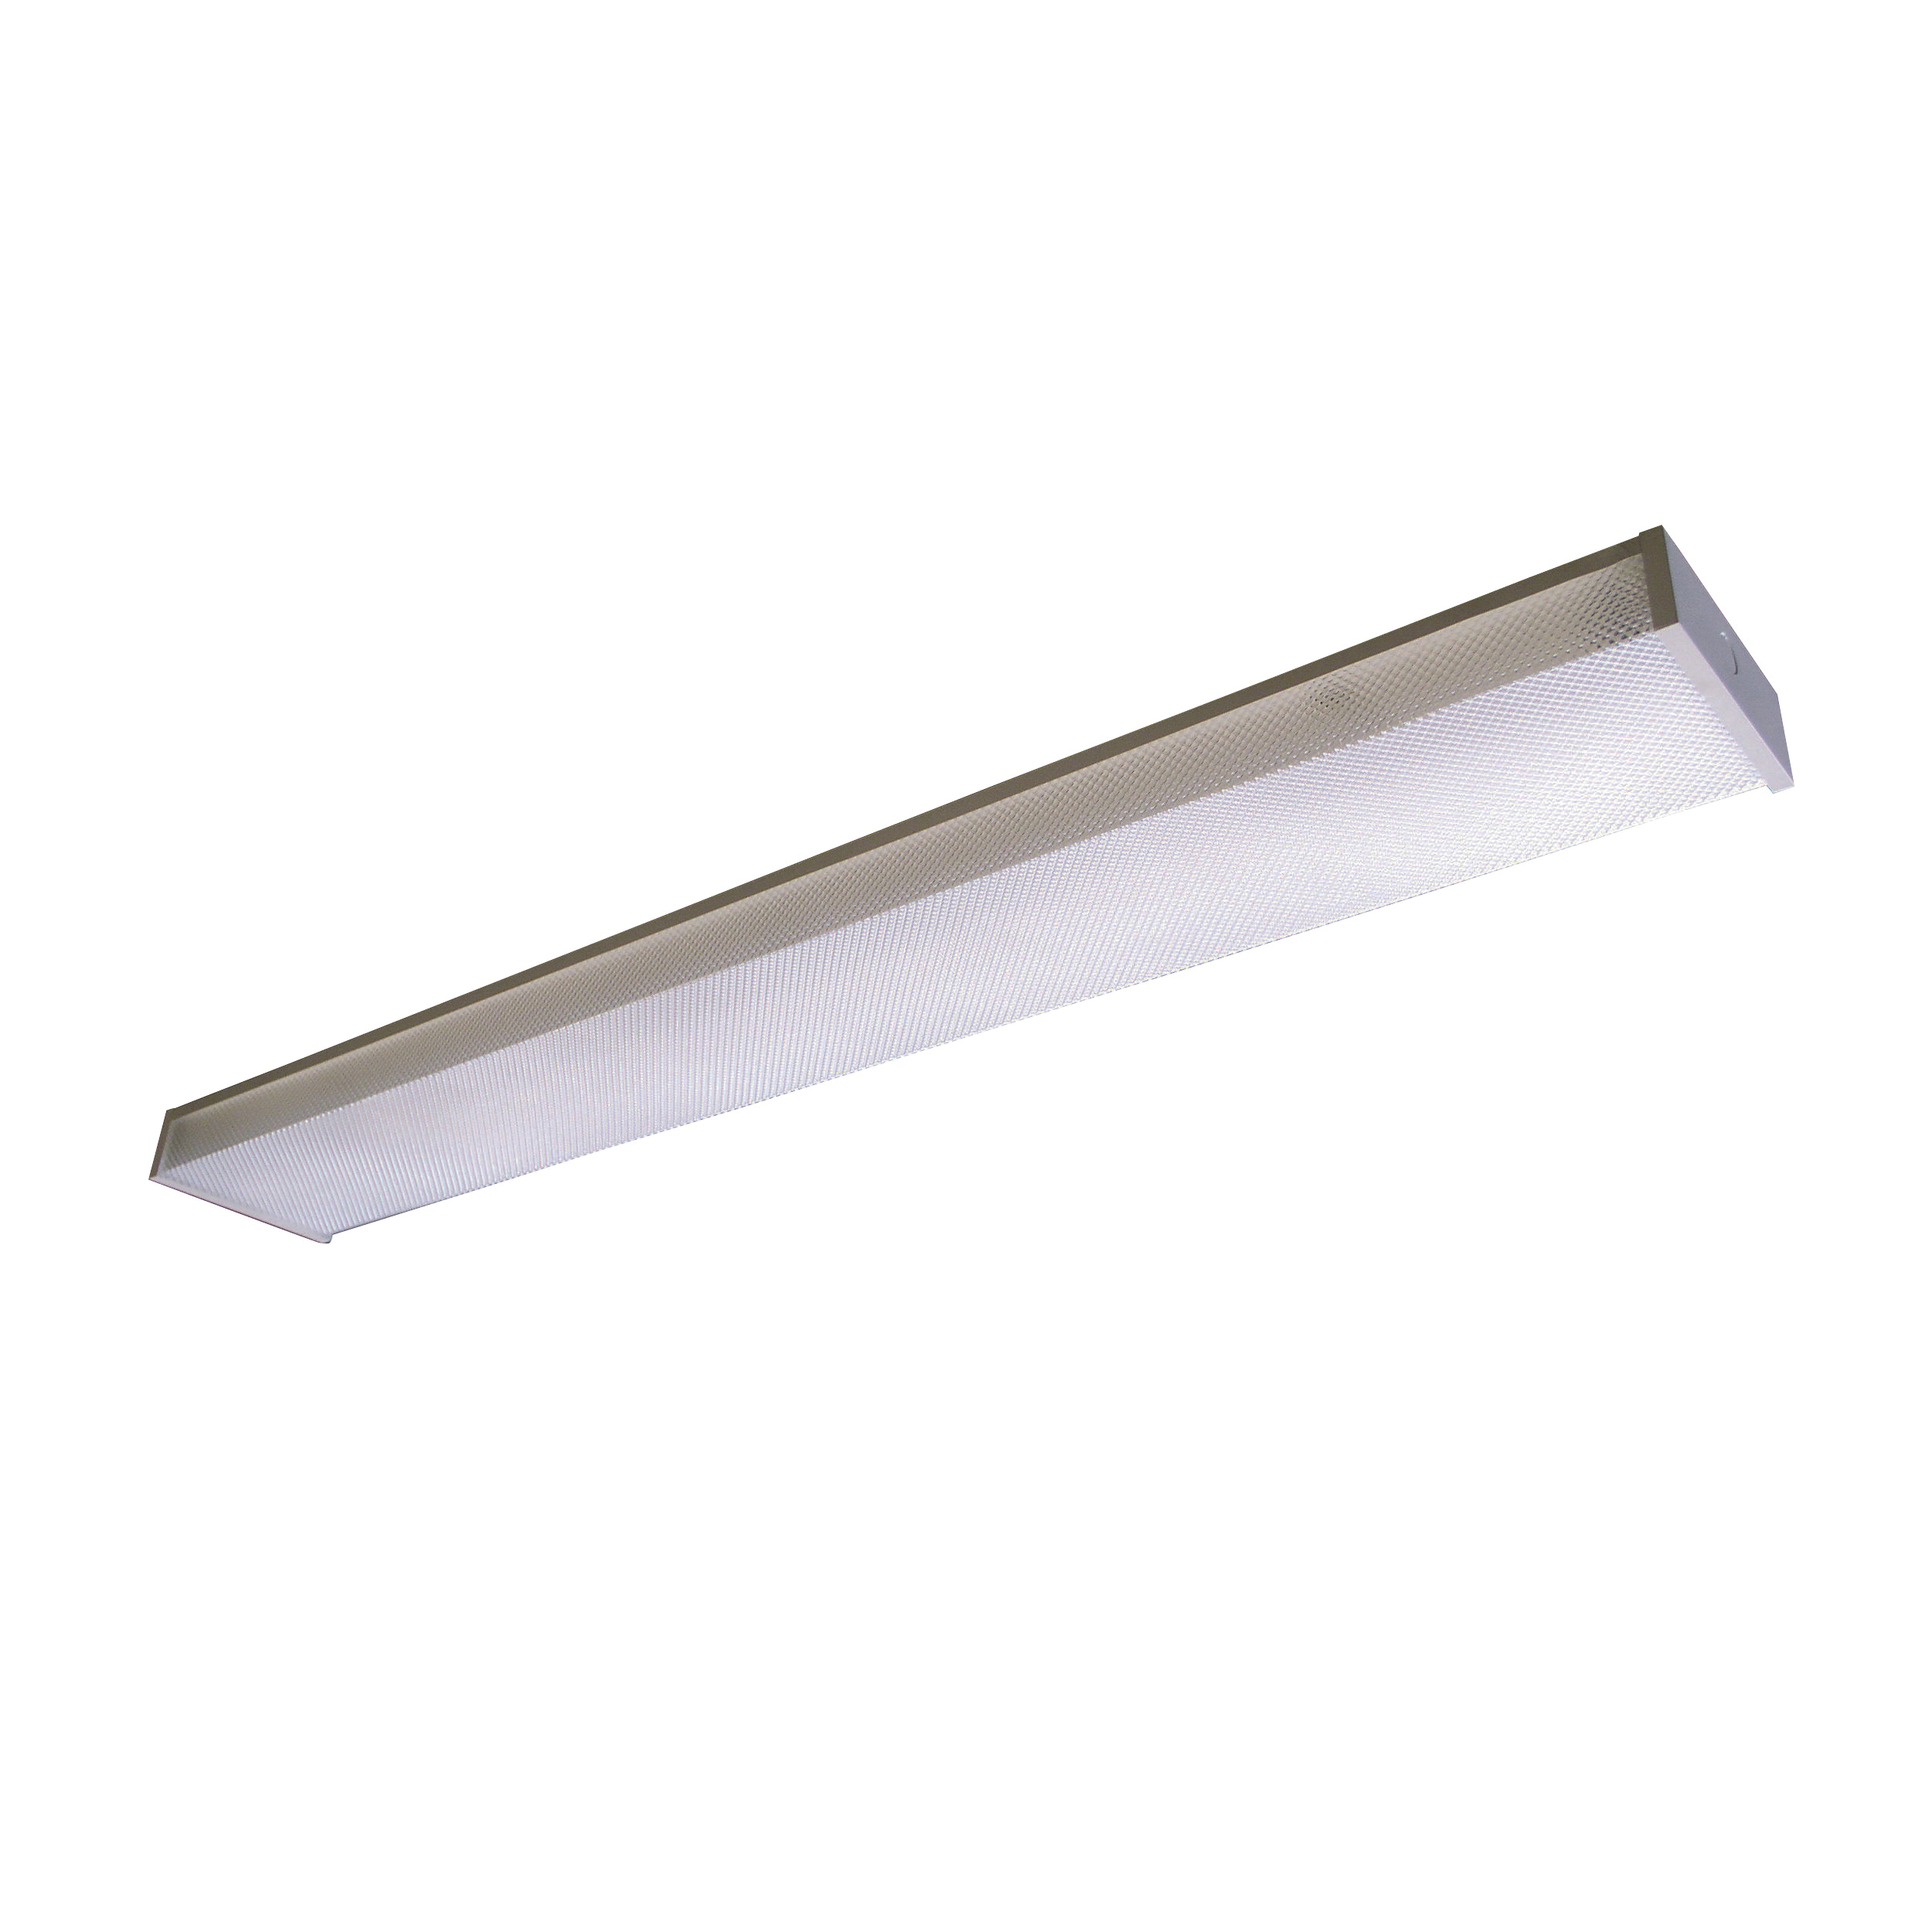 Picture of LITHONIA LIGHTING 3348 Fluorescent Wrap, 120 V, 2-Lamp, Steel Fixture, White Fixture